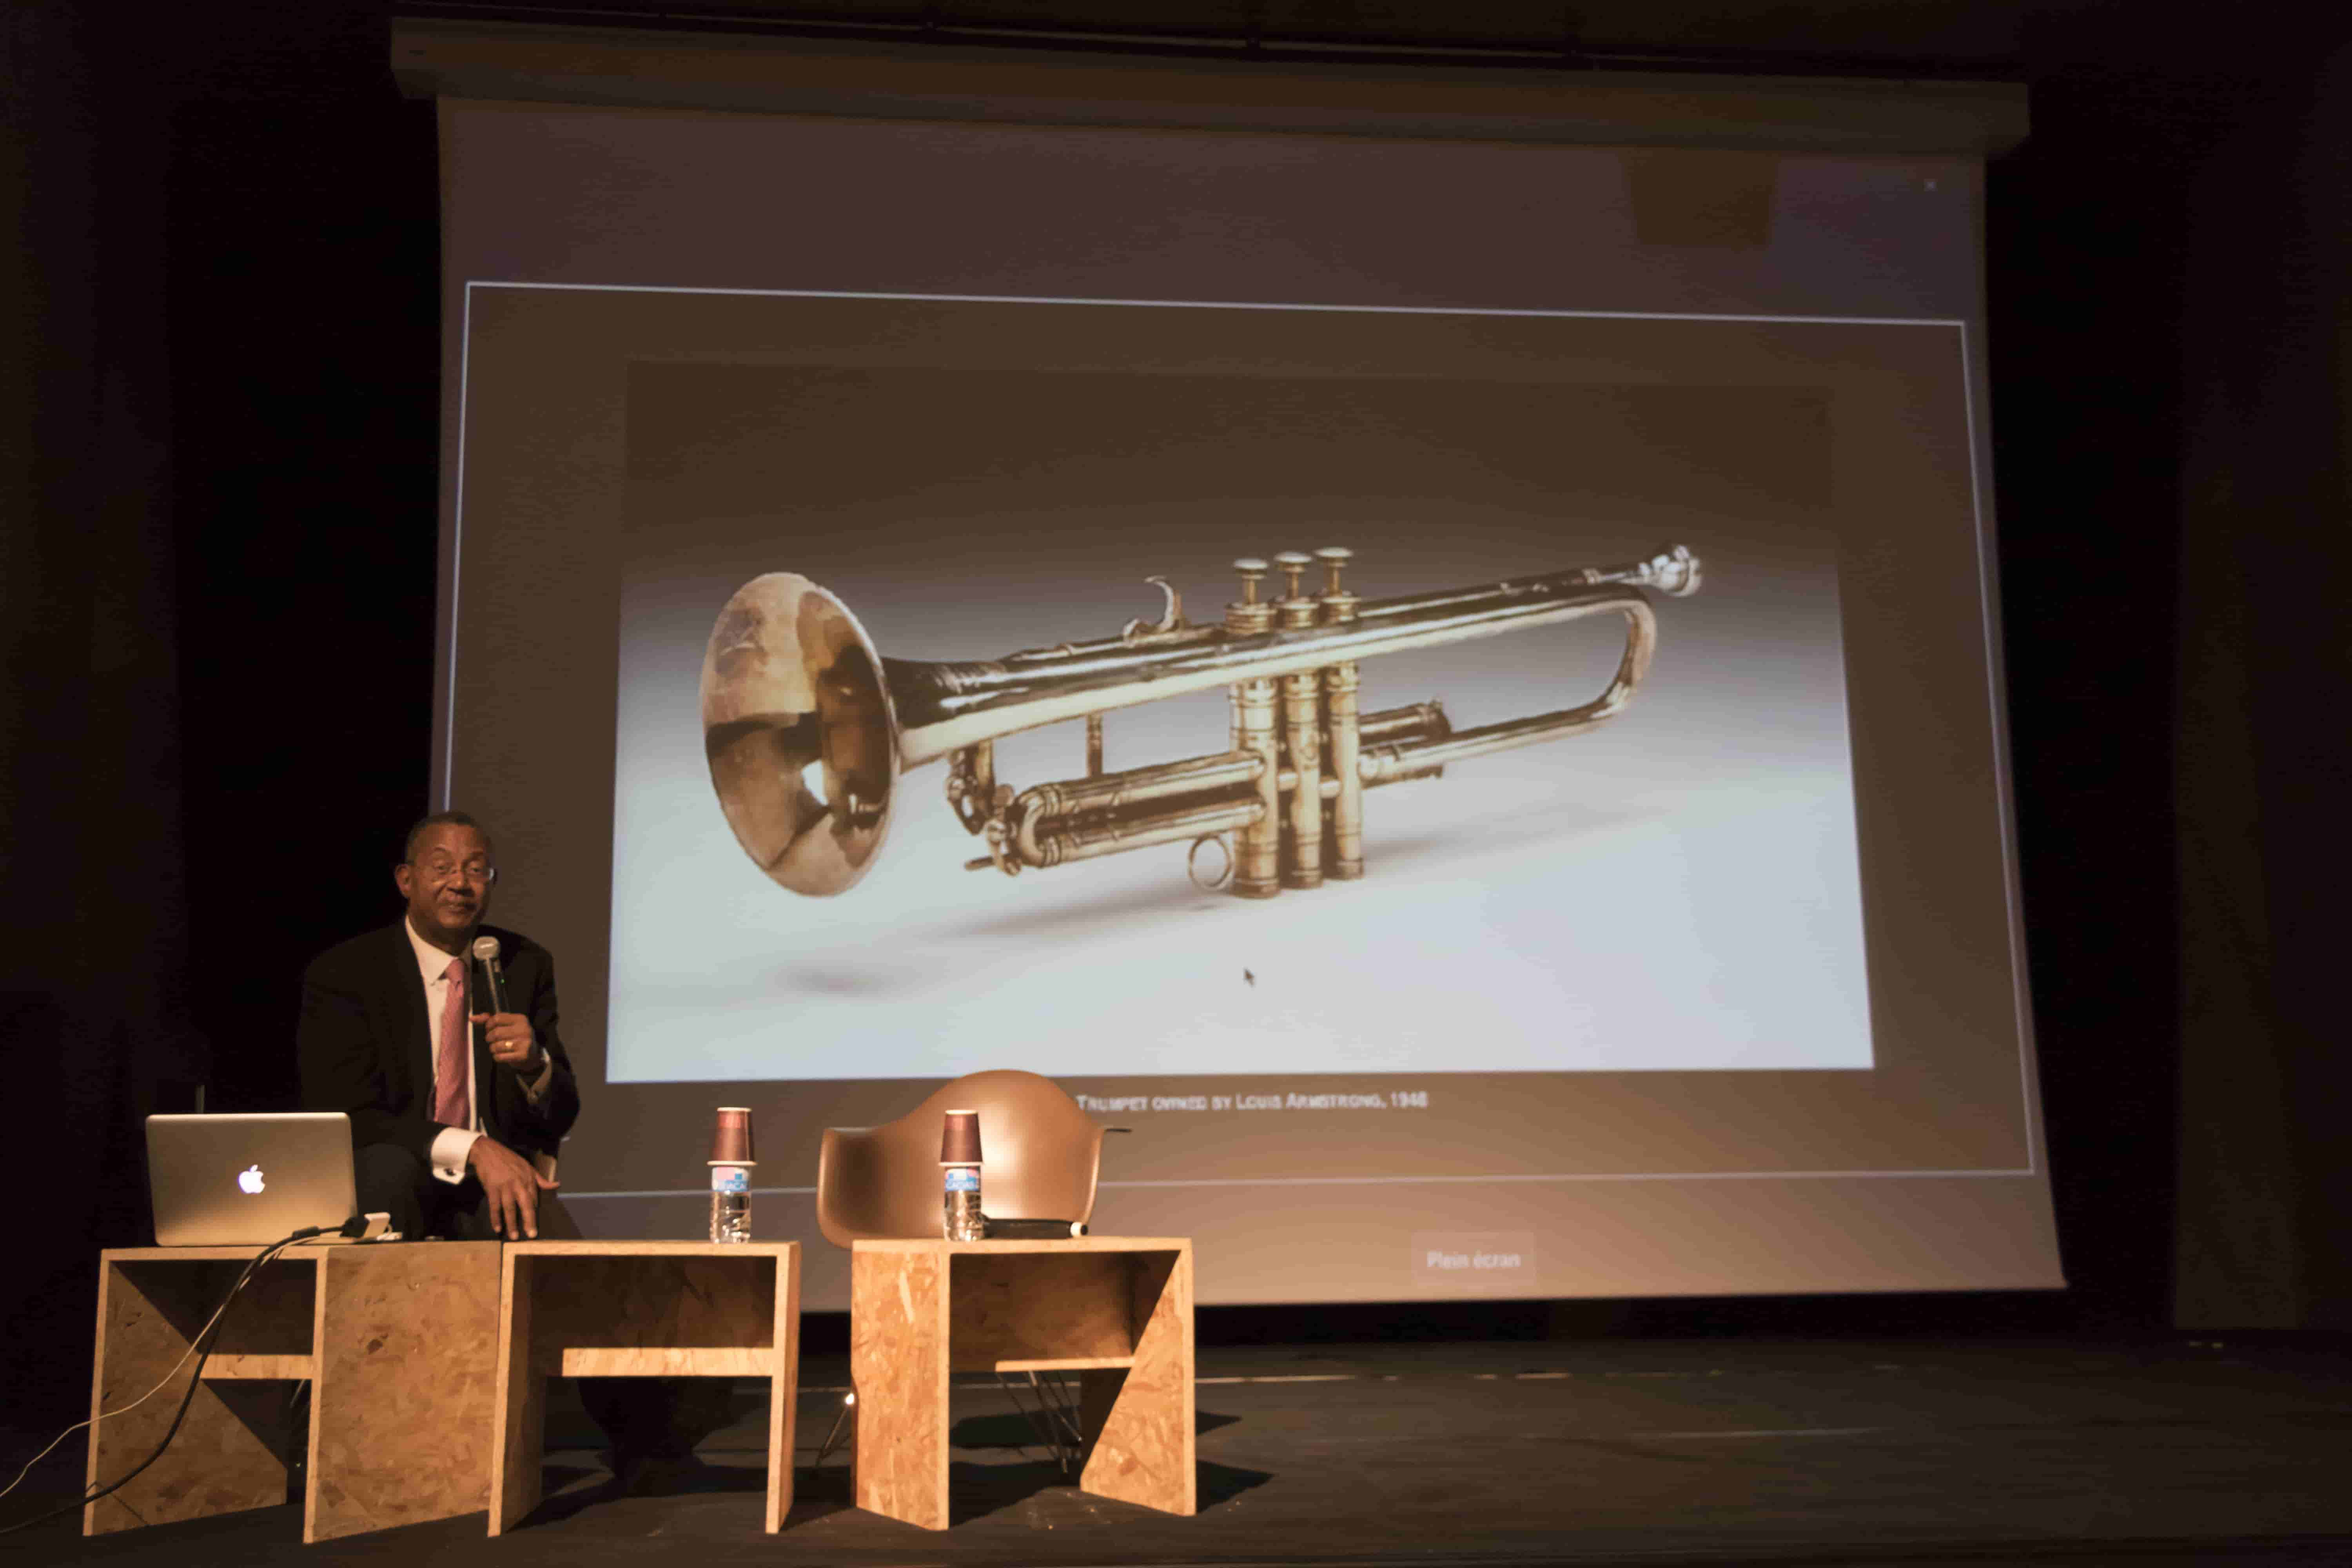 NMAAHC collection - Louis Armstrong's trumpet